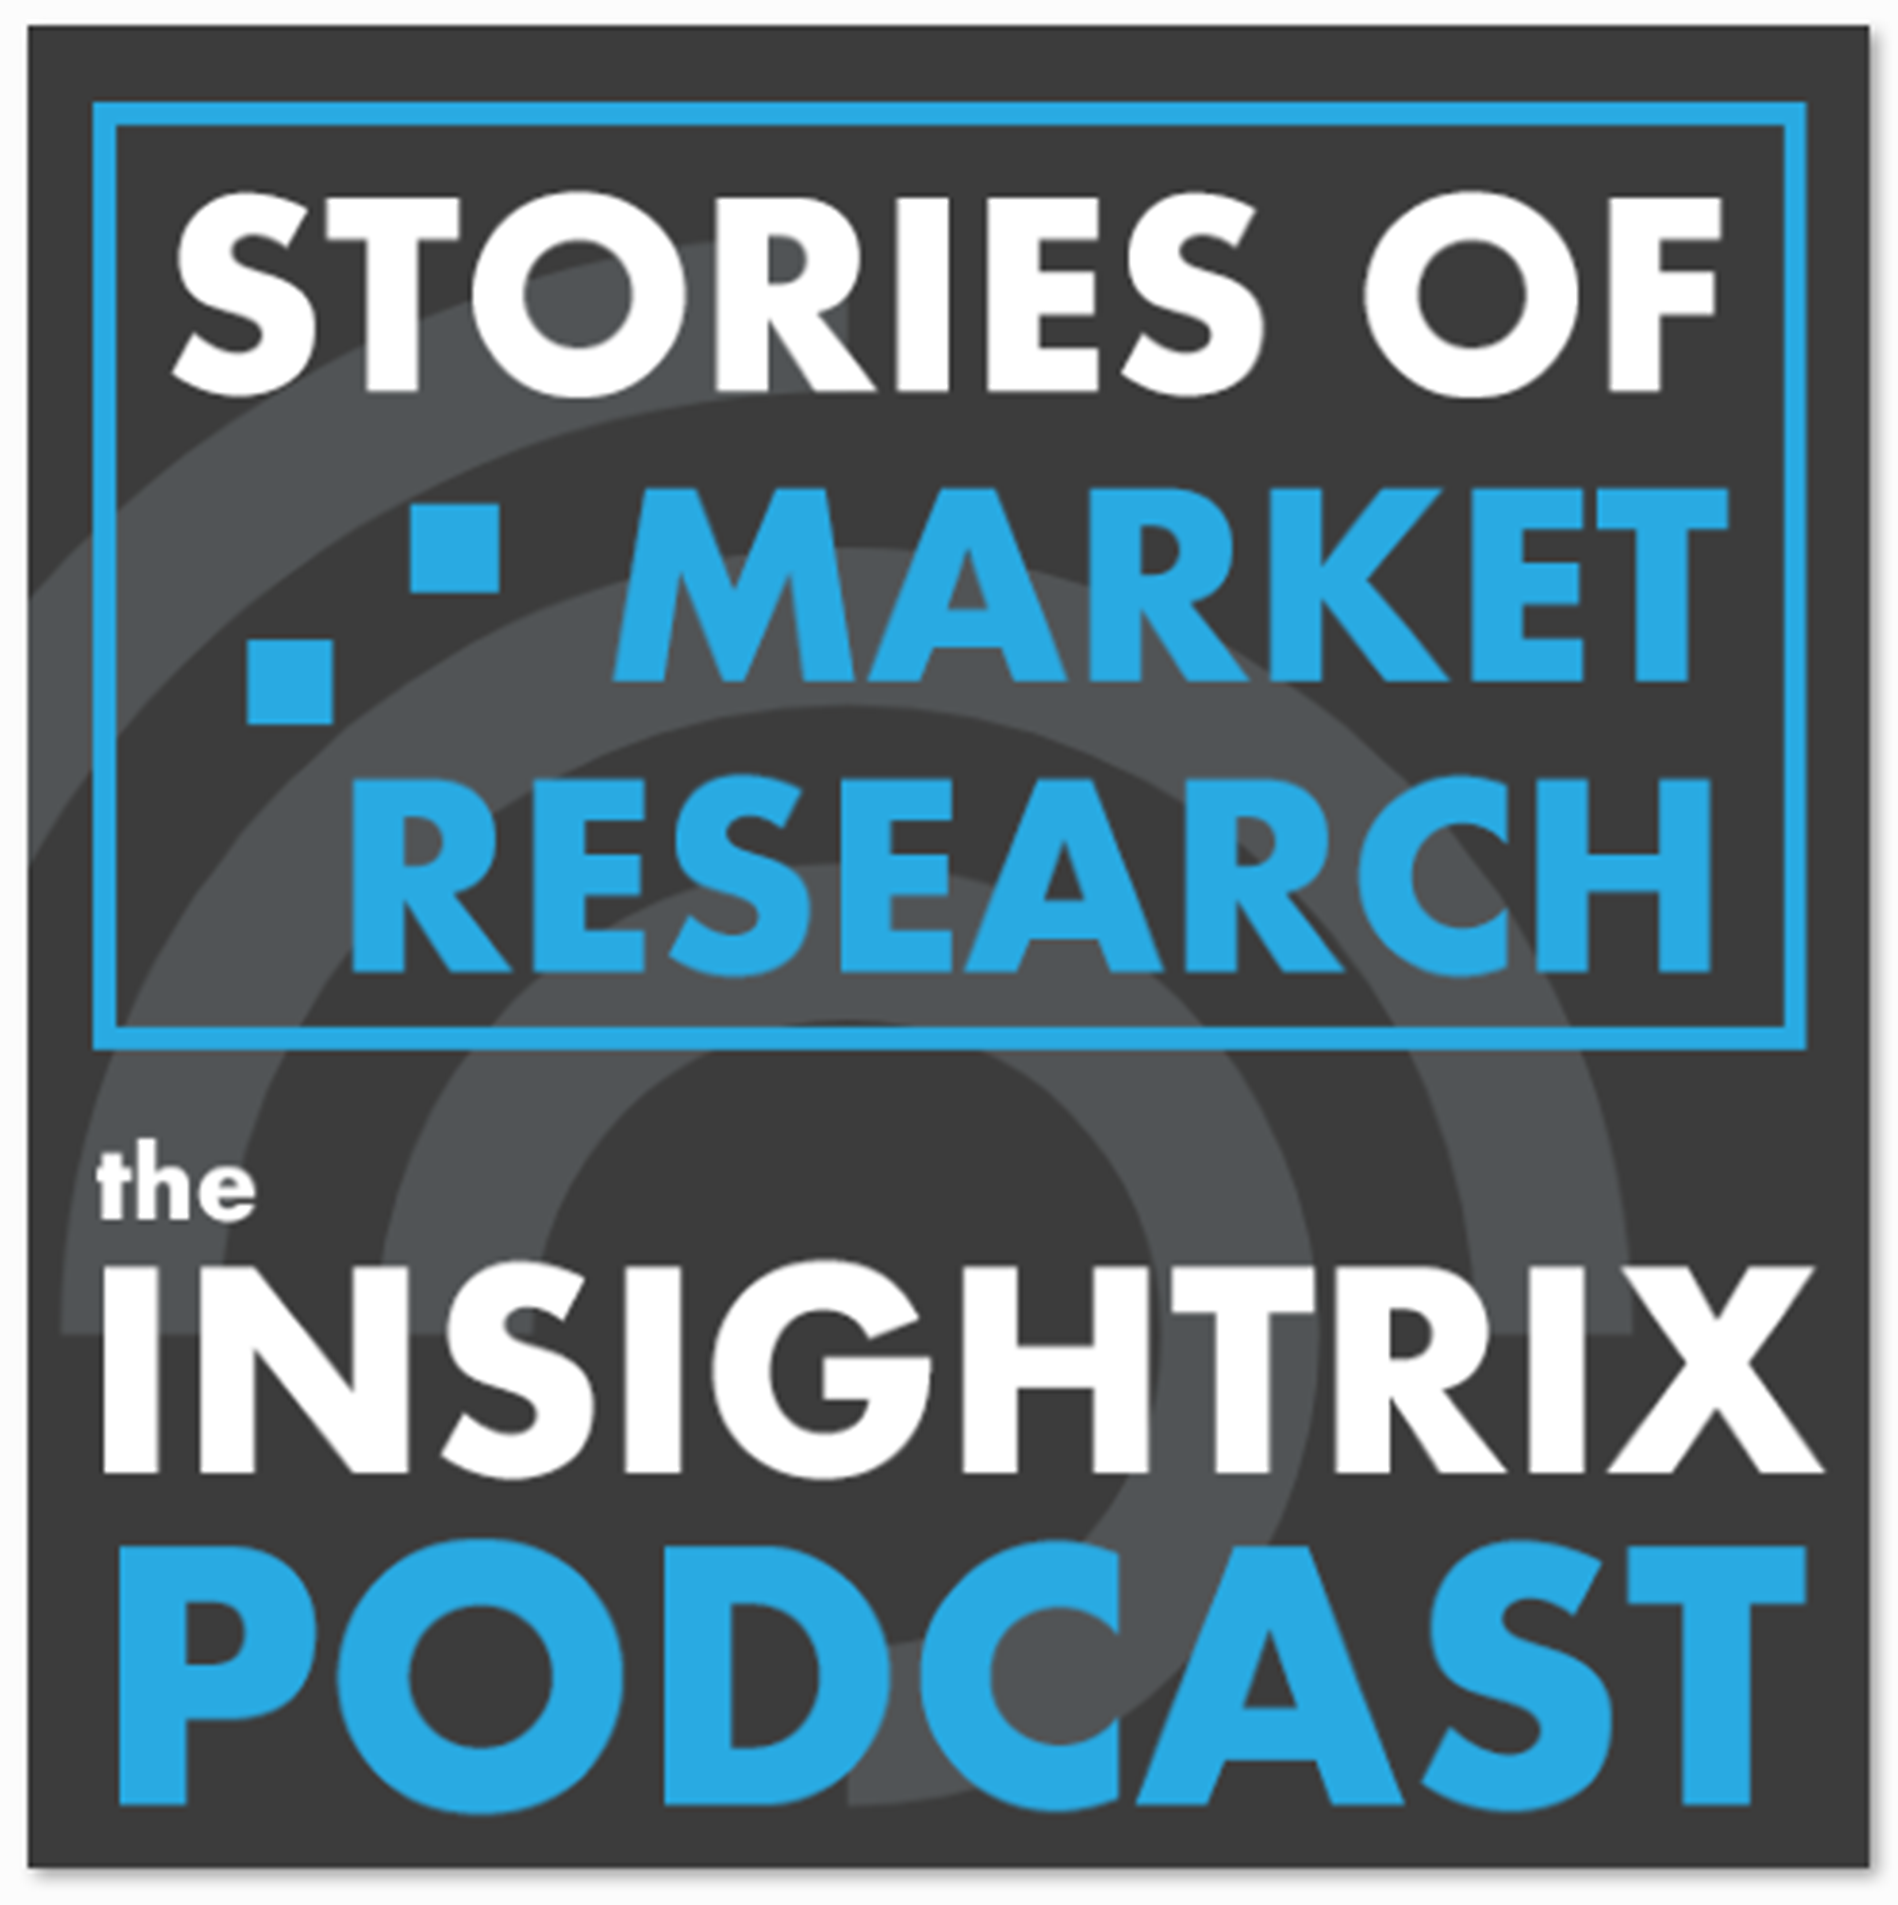 Podcast schedule update, Stories-of-Market-Research, Insightrix-Podcast, Insightrix, Saskatoon-podcast, market-research-podcast, mrx-podcast